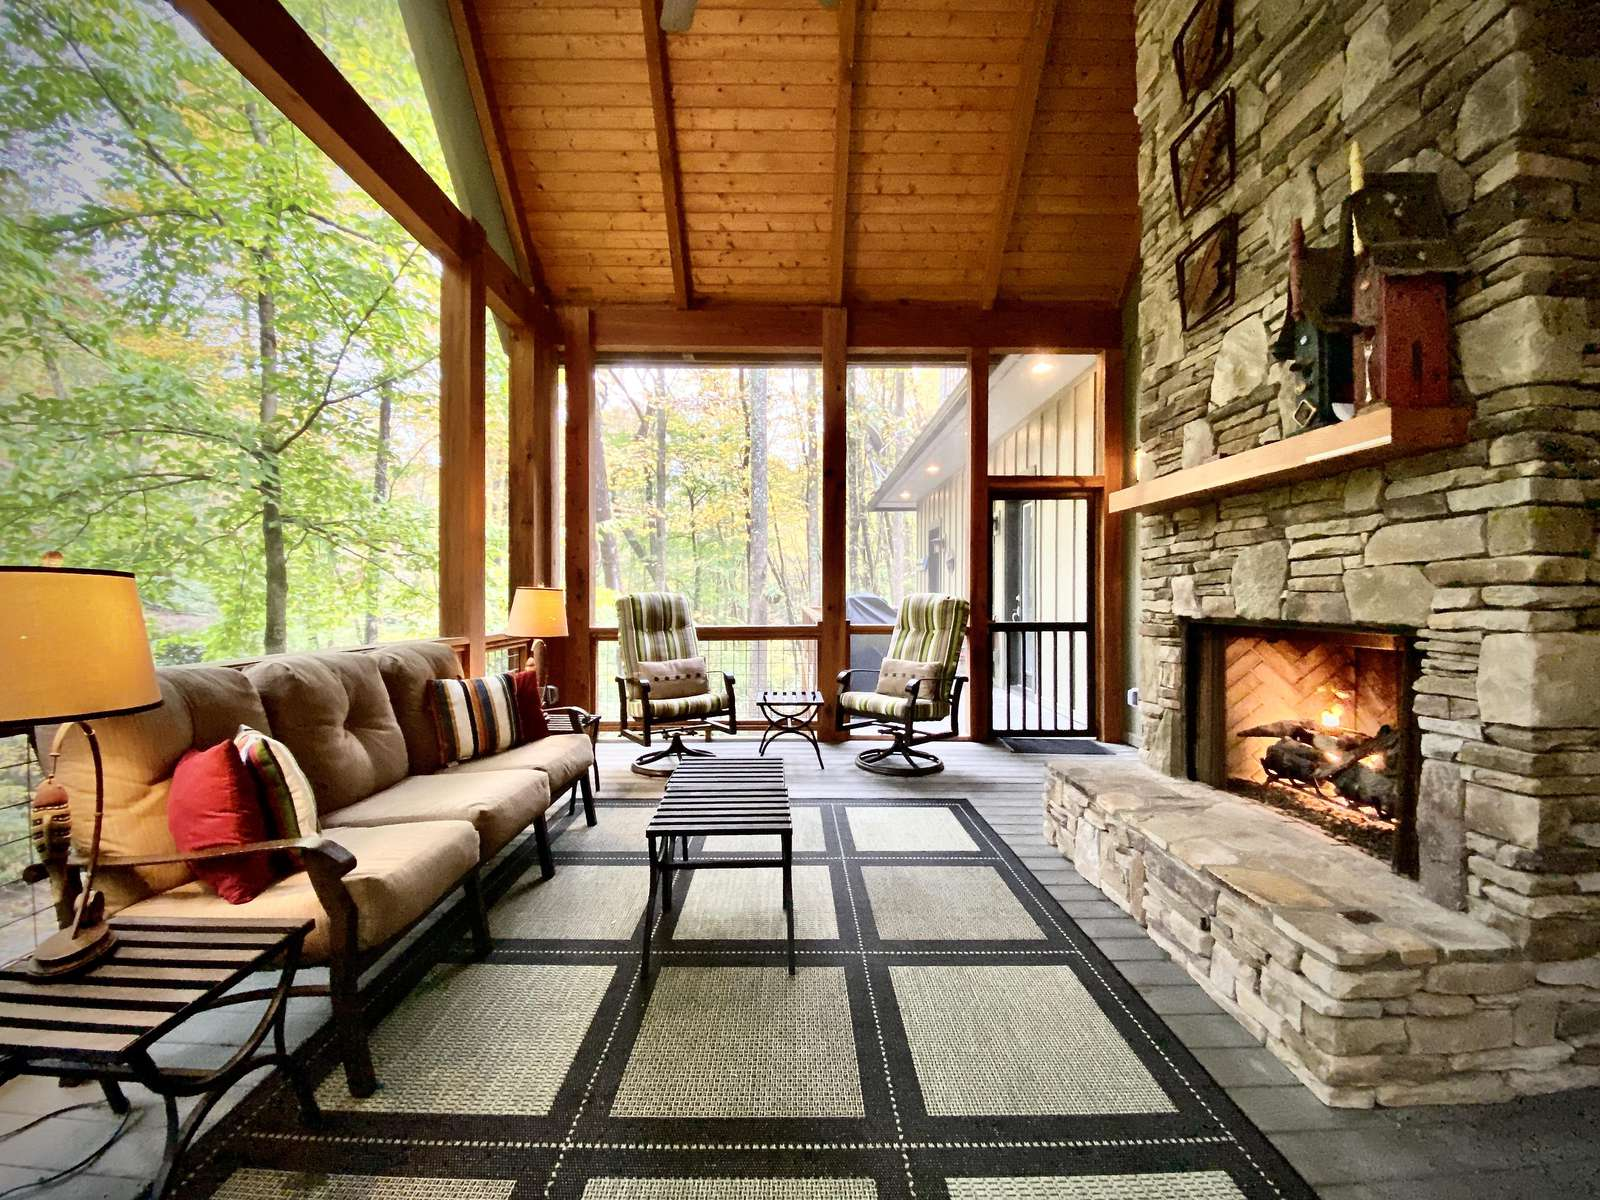 Enjoy Nature and the Gentle Warmth of the Outdoor Fire Place